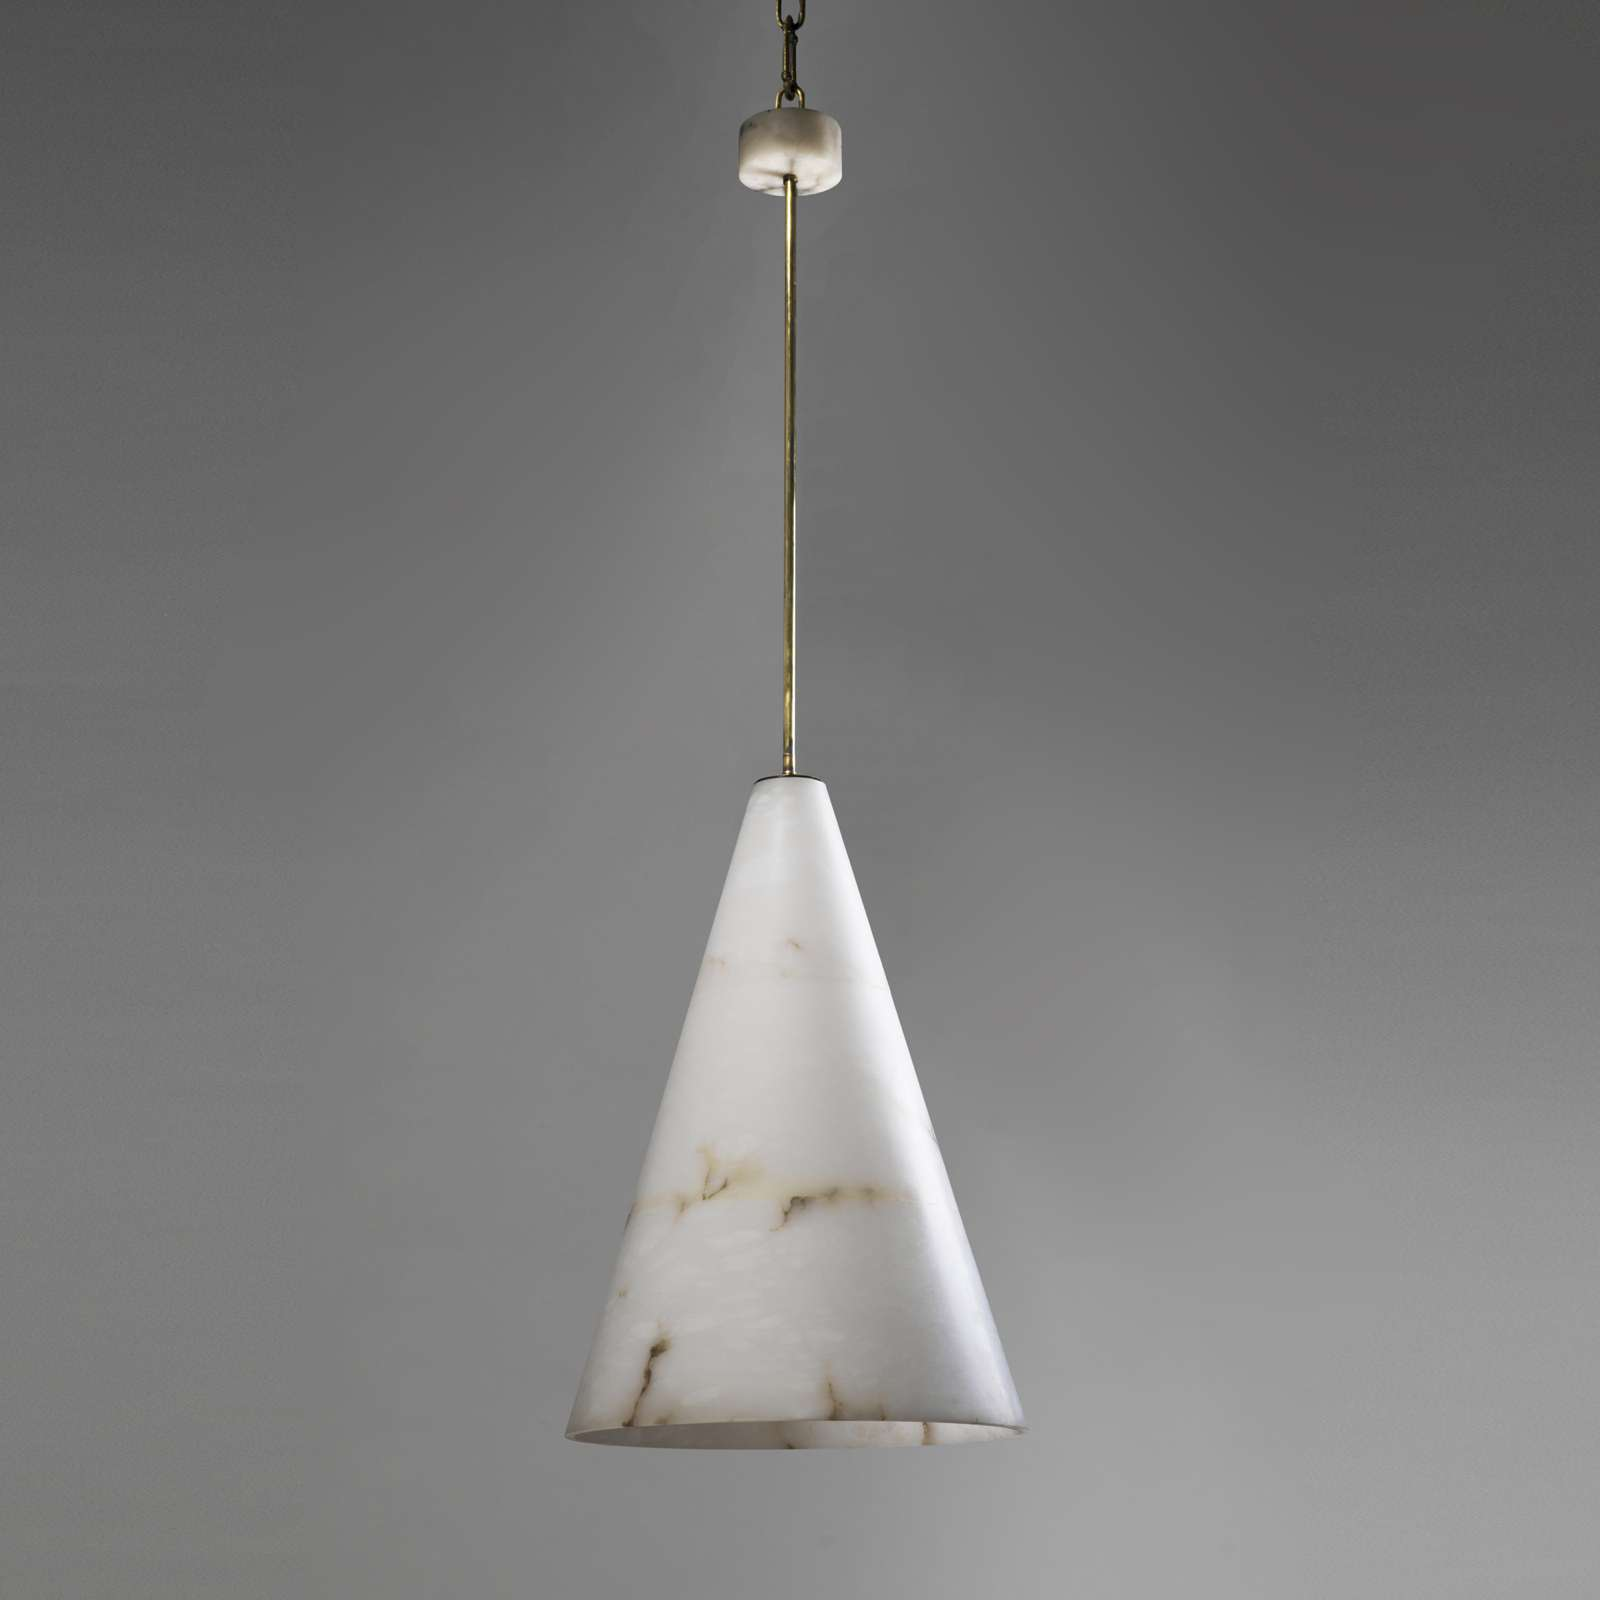 Massive Alabaster Cone Light With Ceiling Rose And Antique Brass Ings